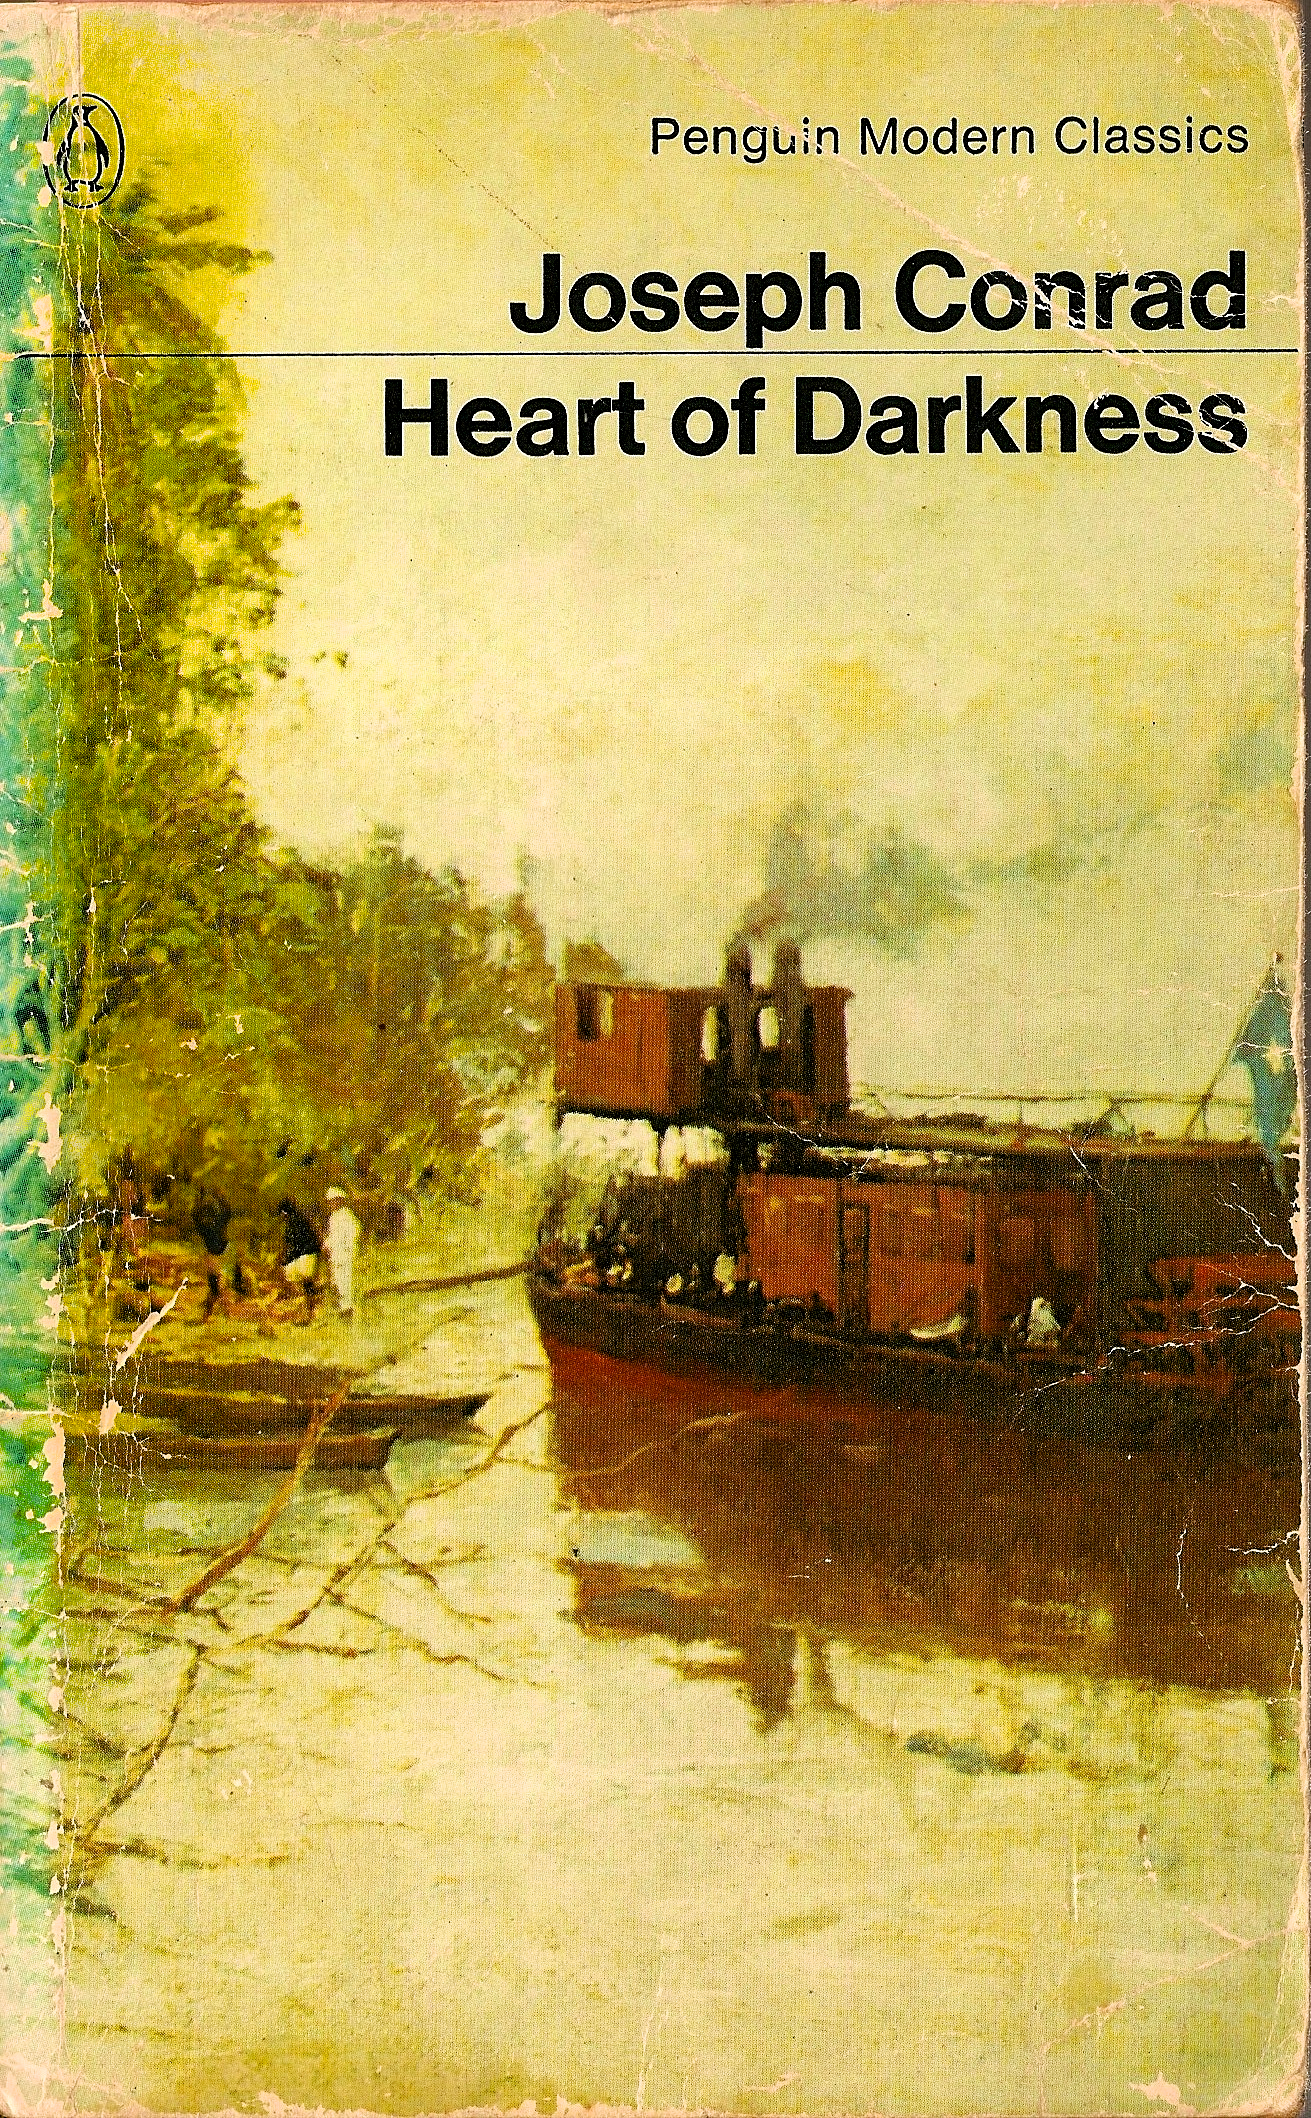 an analysis of cruelty in joseph conrads book heart of darkness Digital communication master thesis essays on heart of darkness college on joseph conrads heart of darkness critical analysis of heart of darkness by.